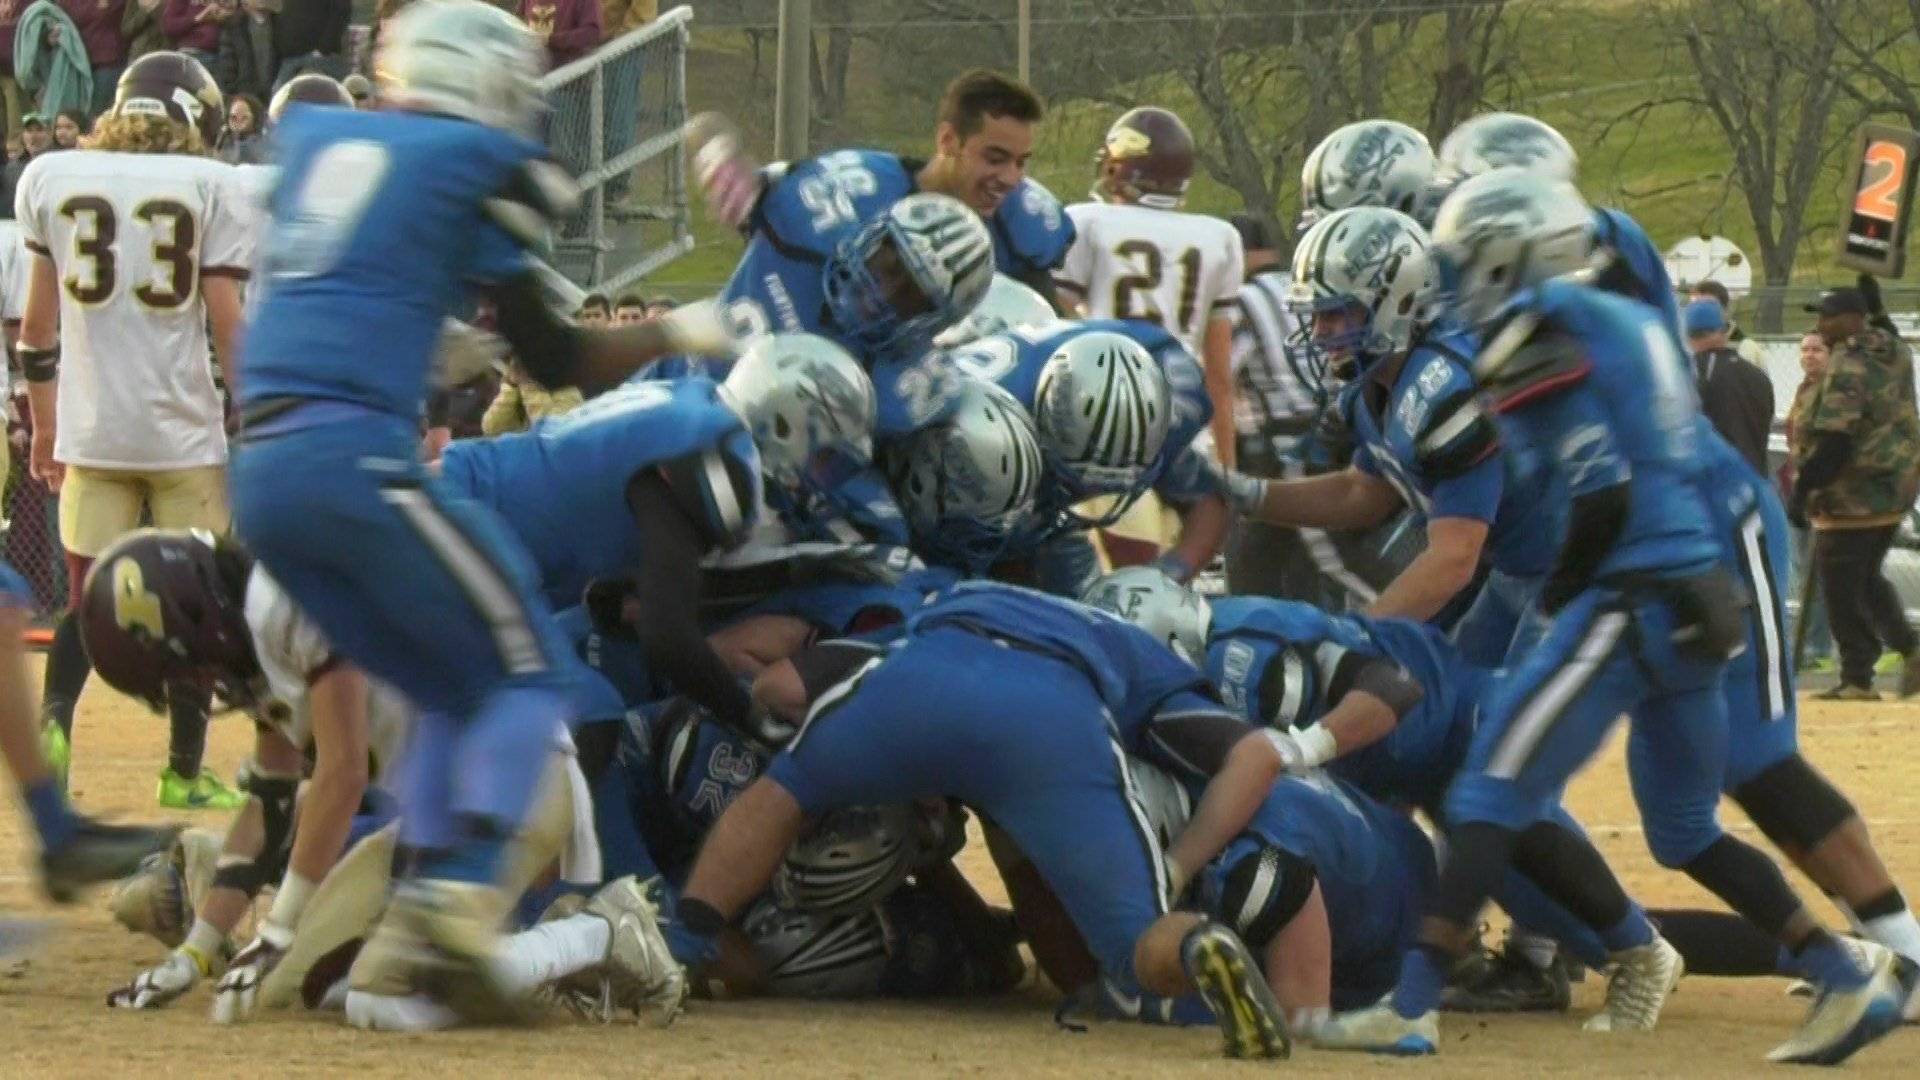 Quarterback Jayden Williams was at the bottom of a dog pile following the victory by the Leemen in the semifinals